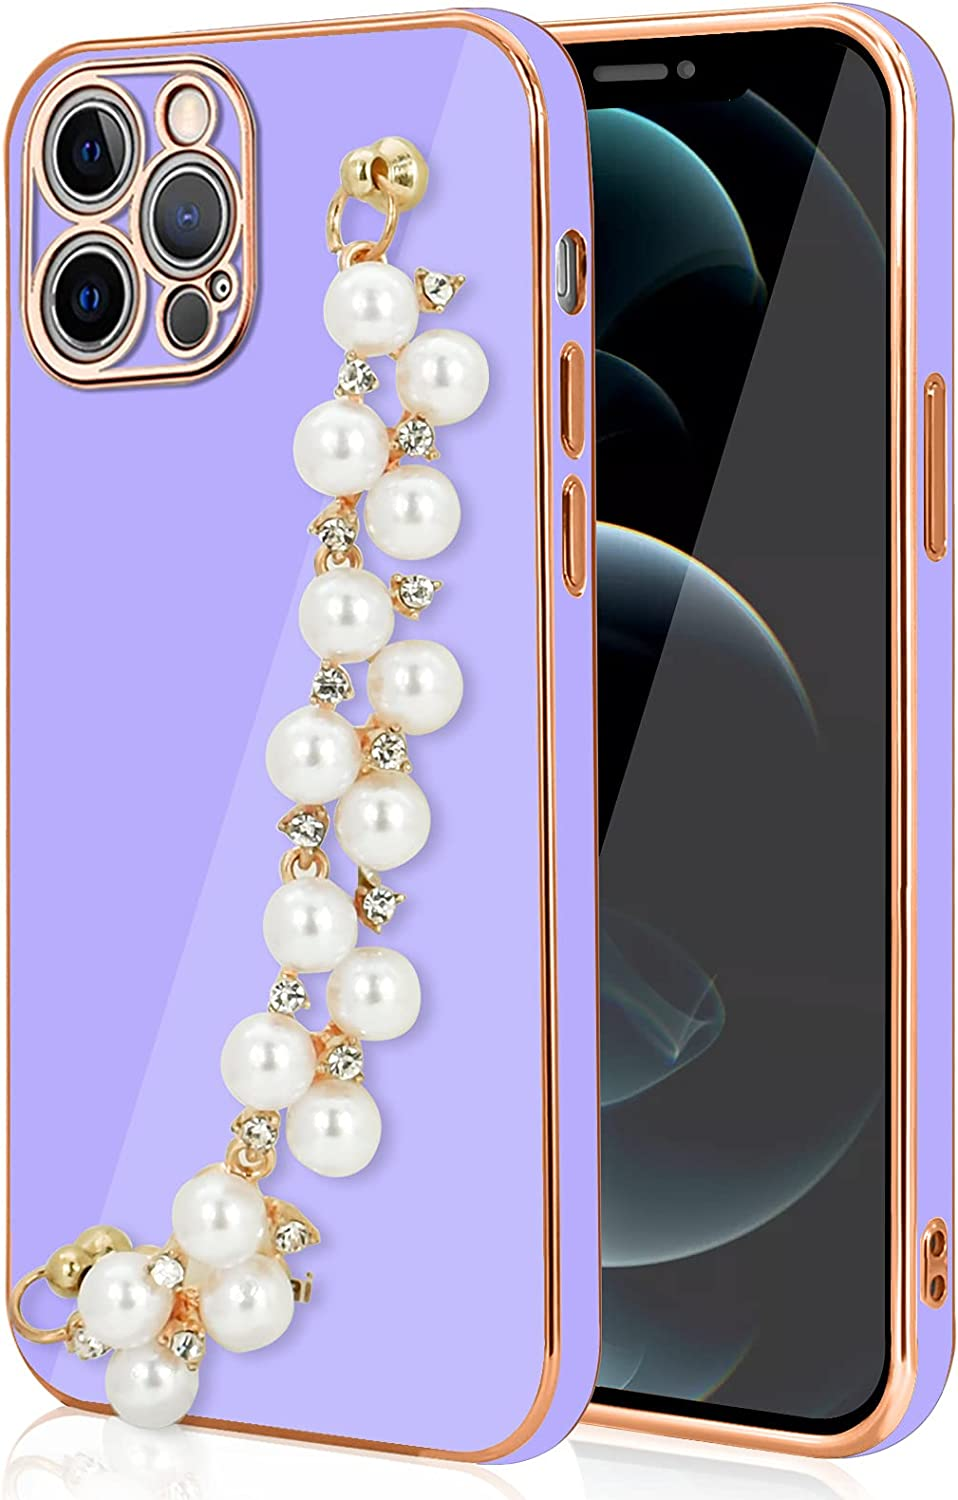 WOYAOFA for iPhone 12 Pro Crystal Diamond Silicone Phone Case for Women Girl, Shiny Luxury Rhinestone Pearl Bracelet, Wrist Strap and Plating Soft TPU Bumper,Slim and Cute Protective Cover-Purple